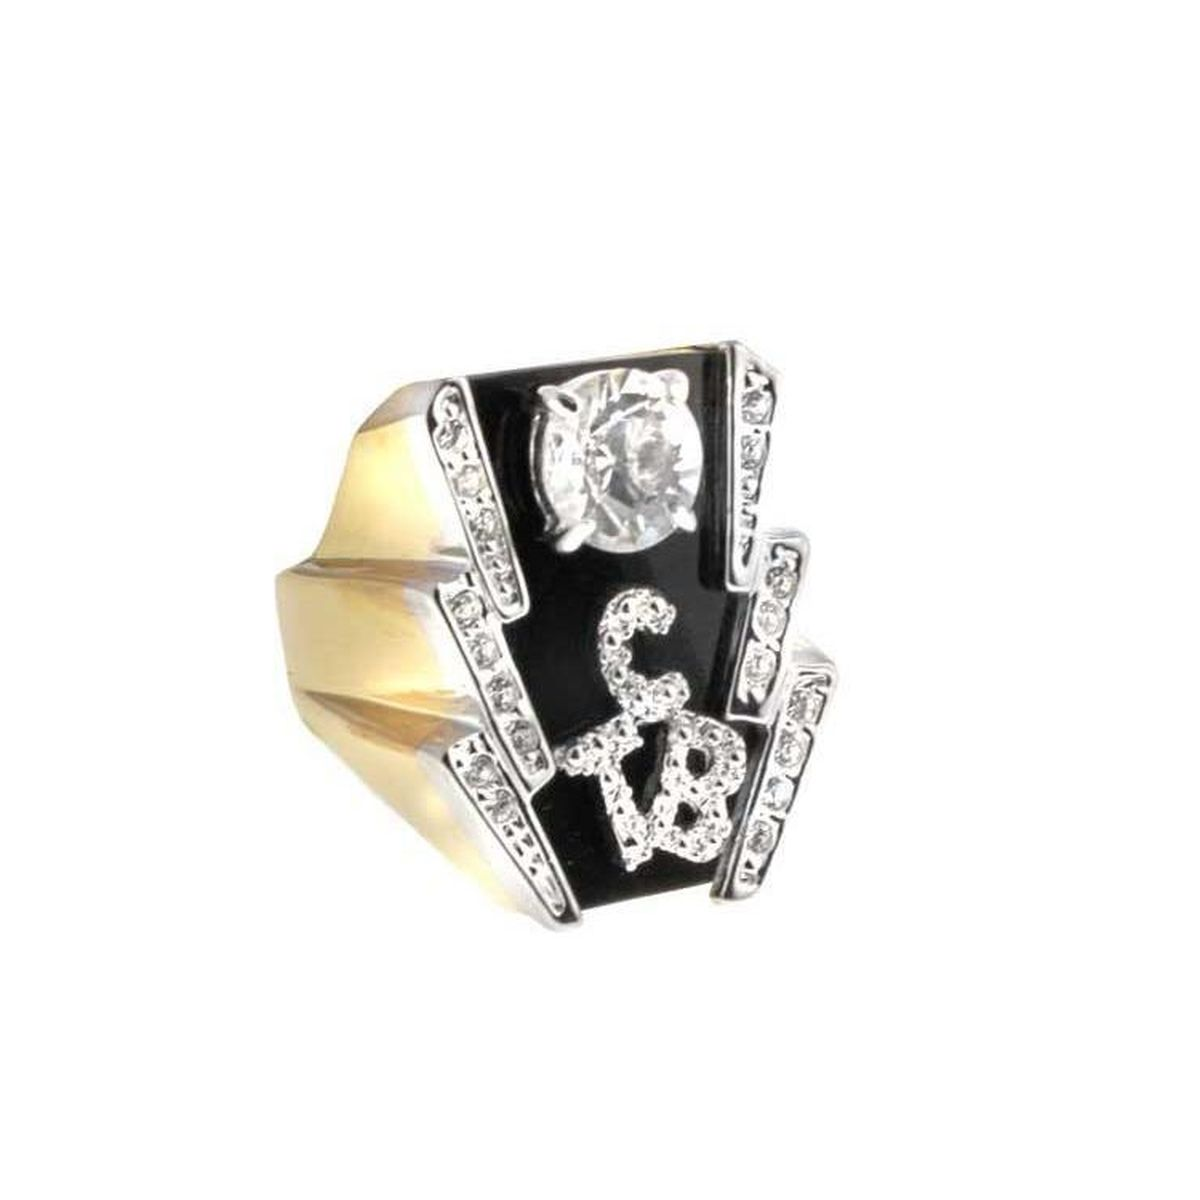 Lowell Hays 18K Gold Plated TCB Ring – Small Ladies Size